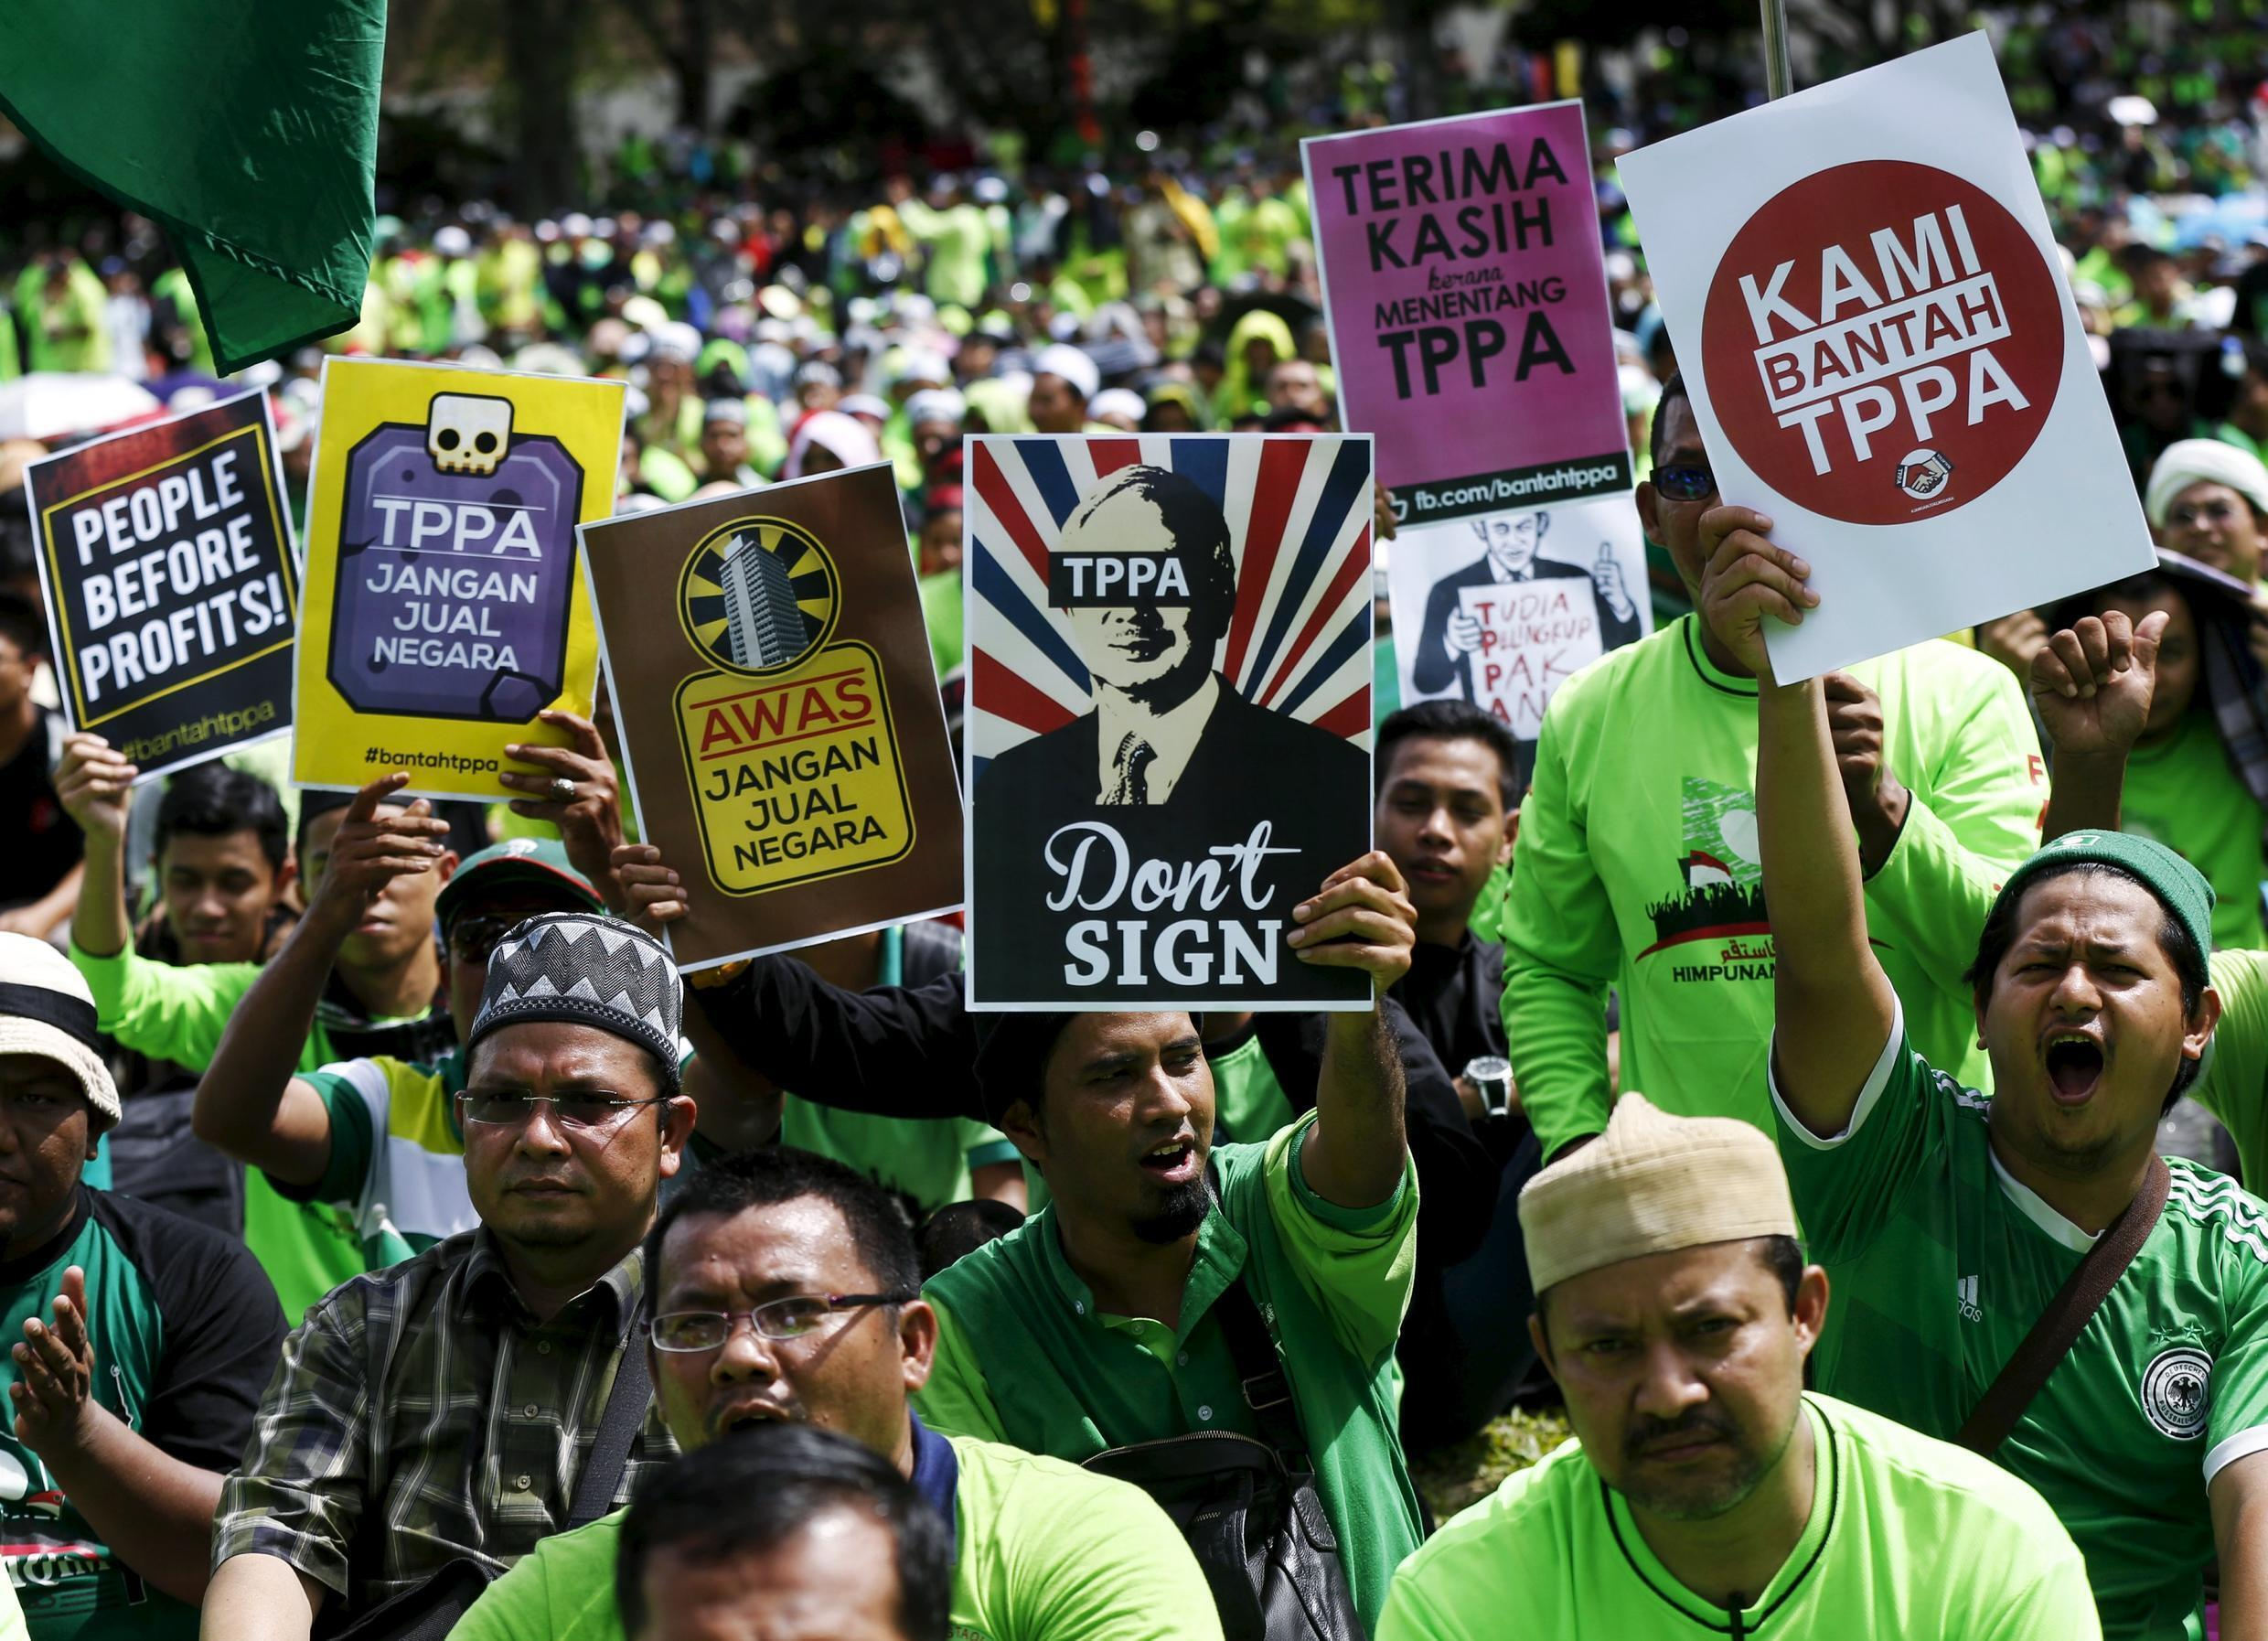 Protestors wave placards at a rally against the Trans Pacific Partnership (TPP) just days before parliament is due to open a debate on the free trade pact in Kuala Lumpur